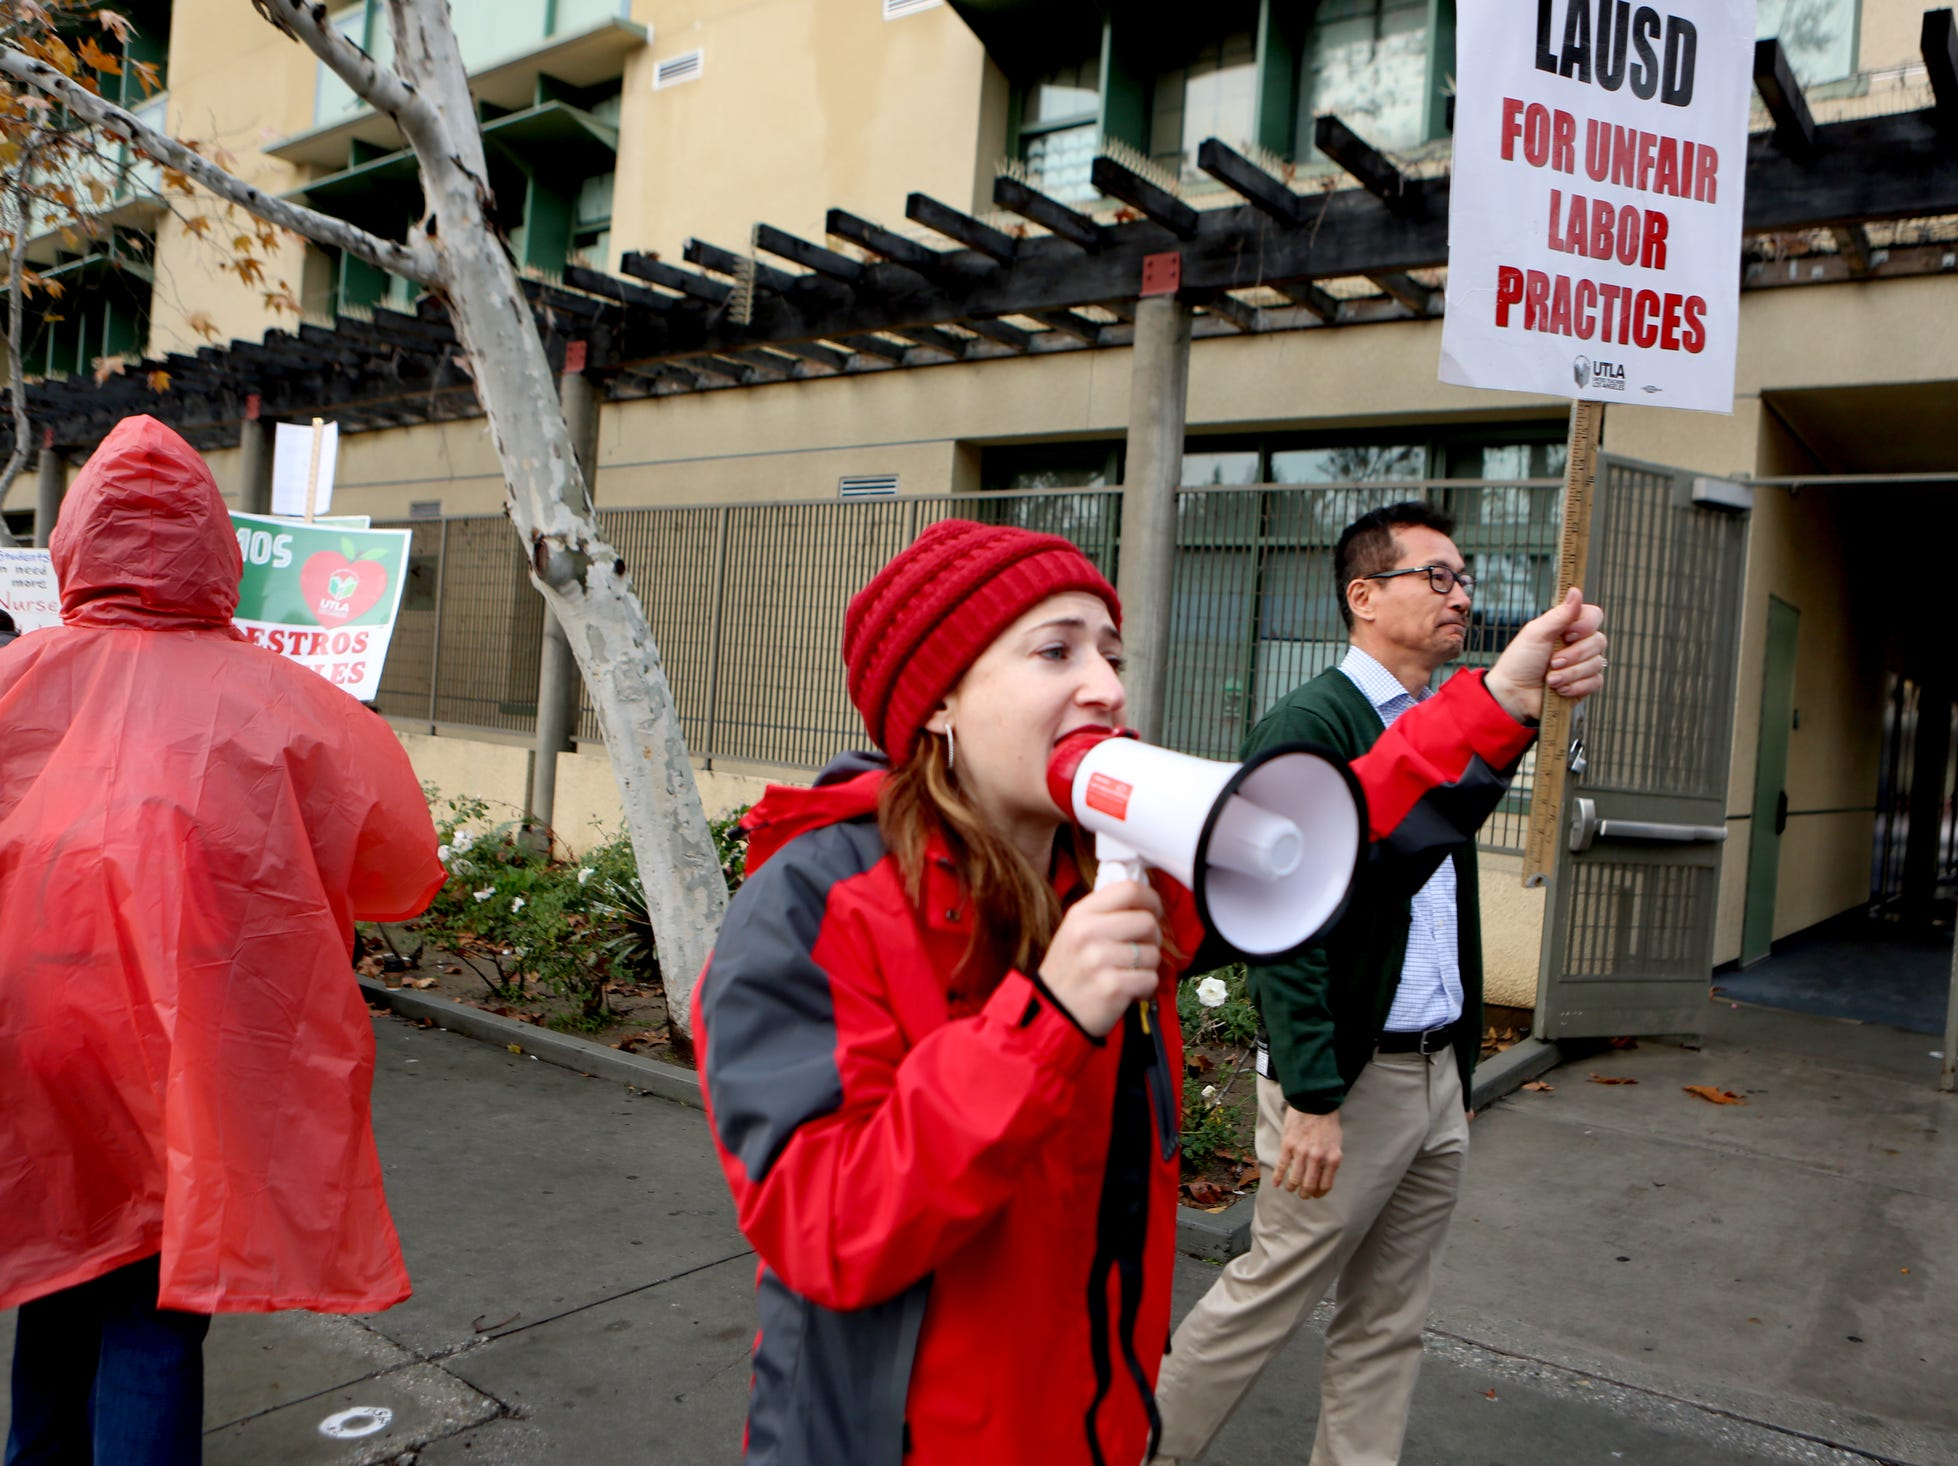 Charles H. Kim Elementary School resource teacher Miriam Feigelstock uses a megaphone to ask parents and students not to cross the picket line as principal Jonathan Paek, right, welcomes students during the third day of the United Teachers Los Angeles strike in Los Angeles on Wednesday, January 16, 2019.